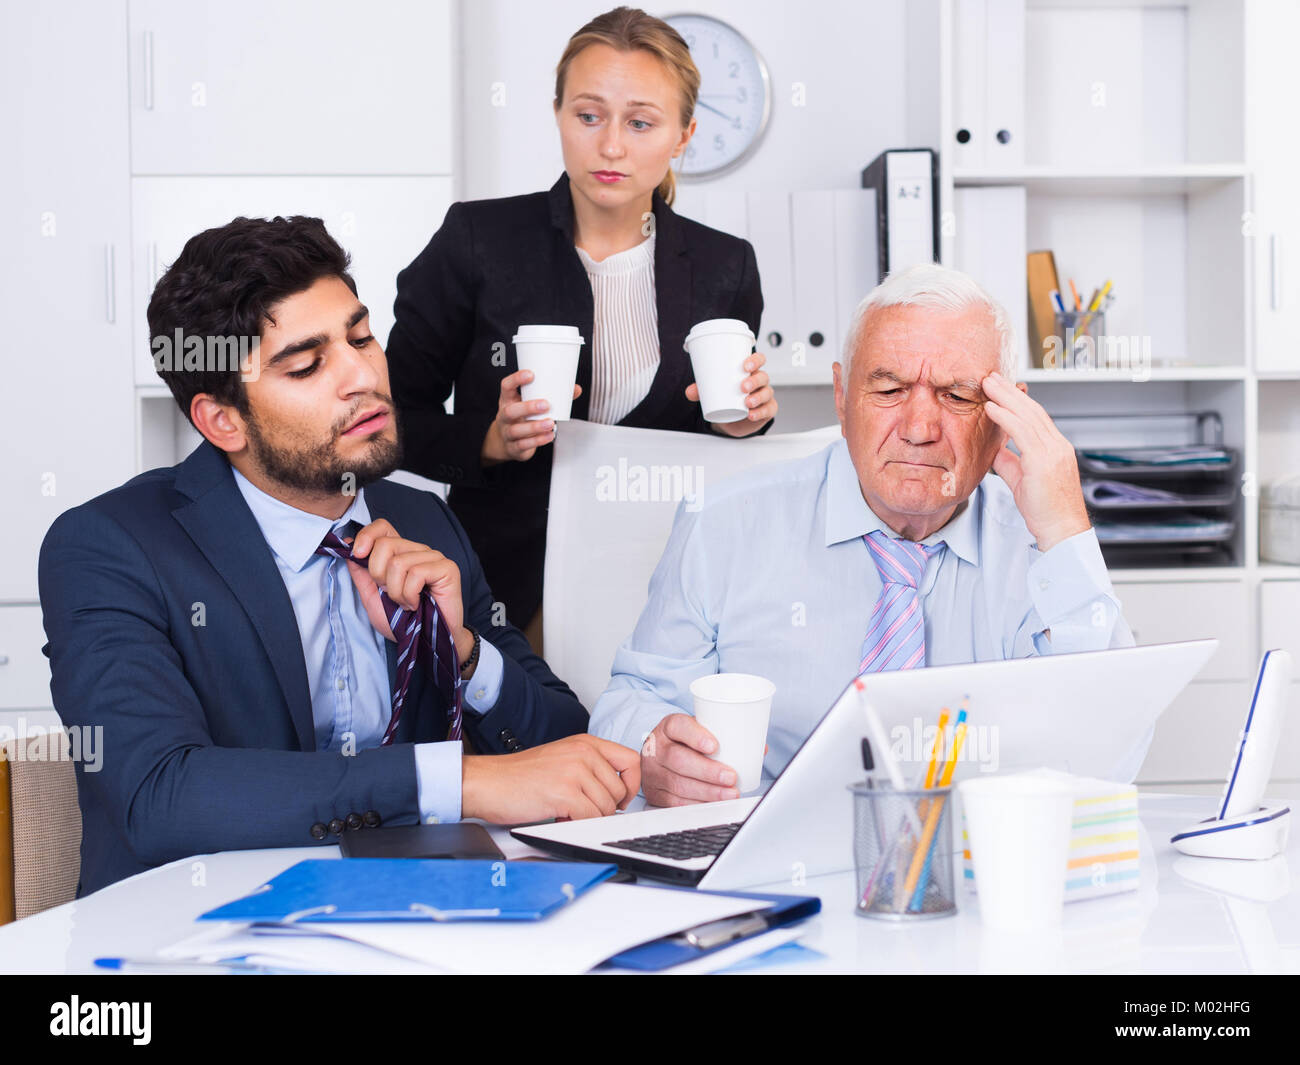 Mature man is having complicated issue with reports made by subordinates in office. - Stock Image